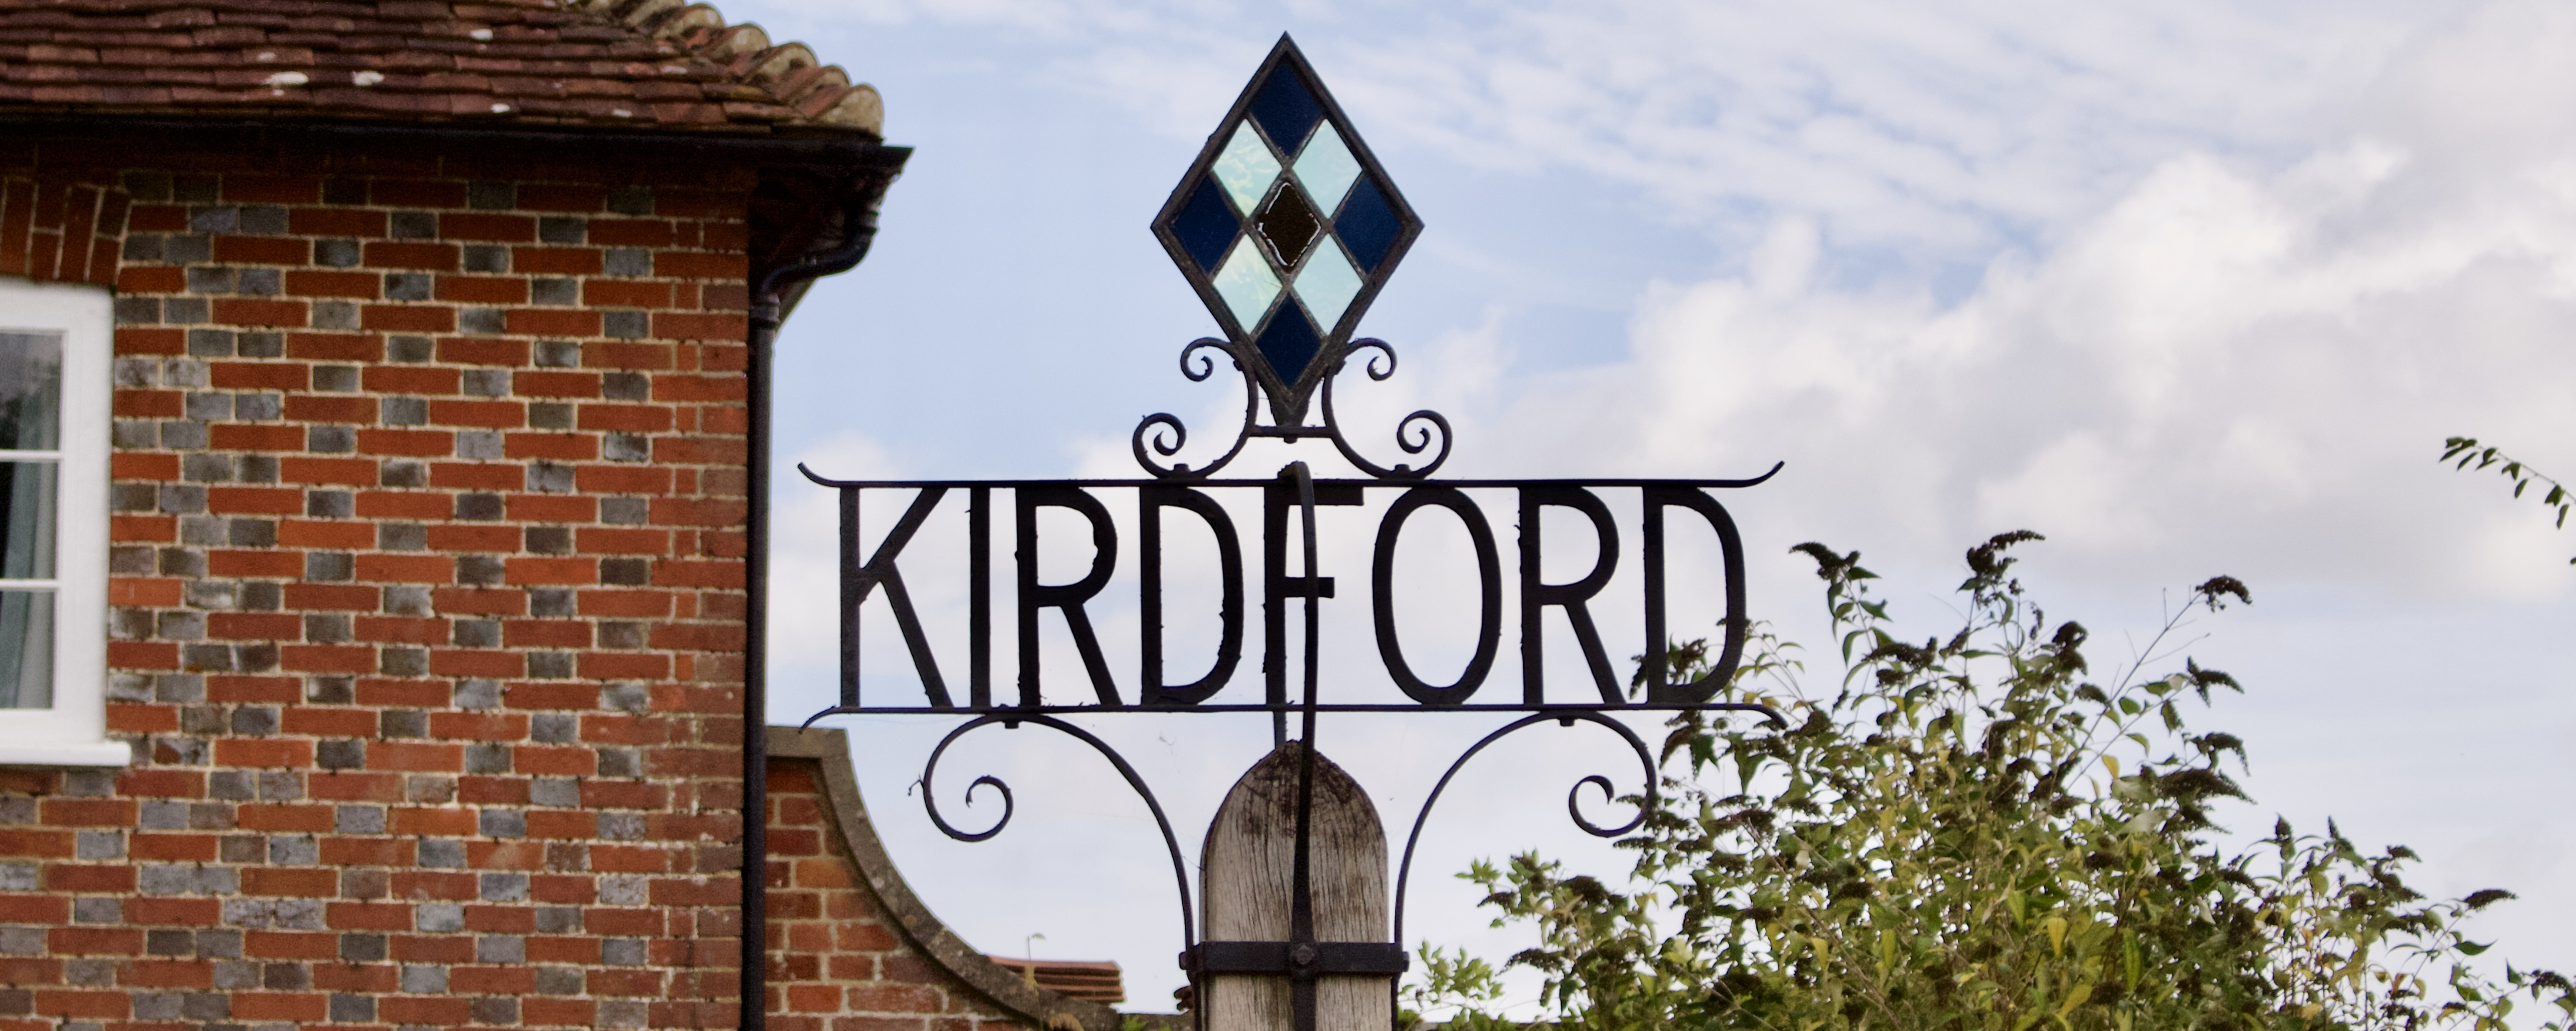 Welcome to Kirdford Parish Council